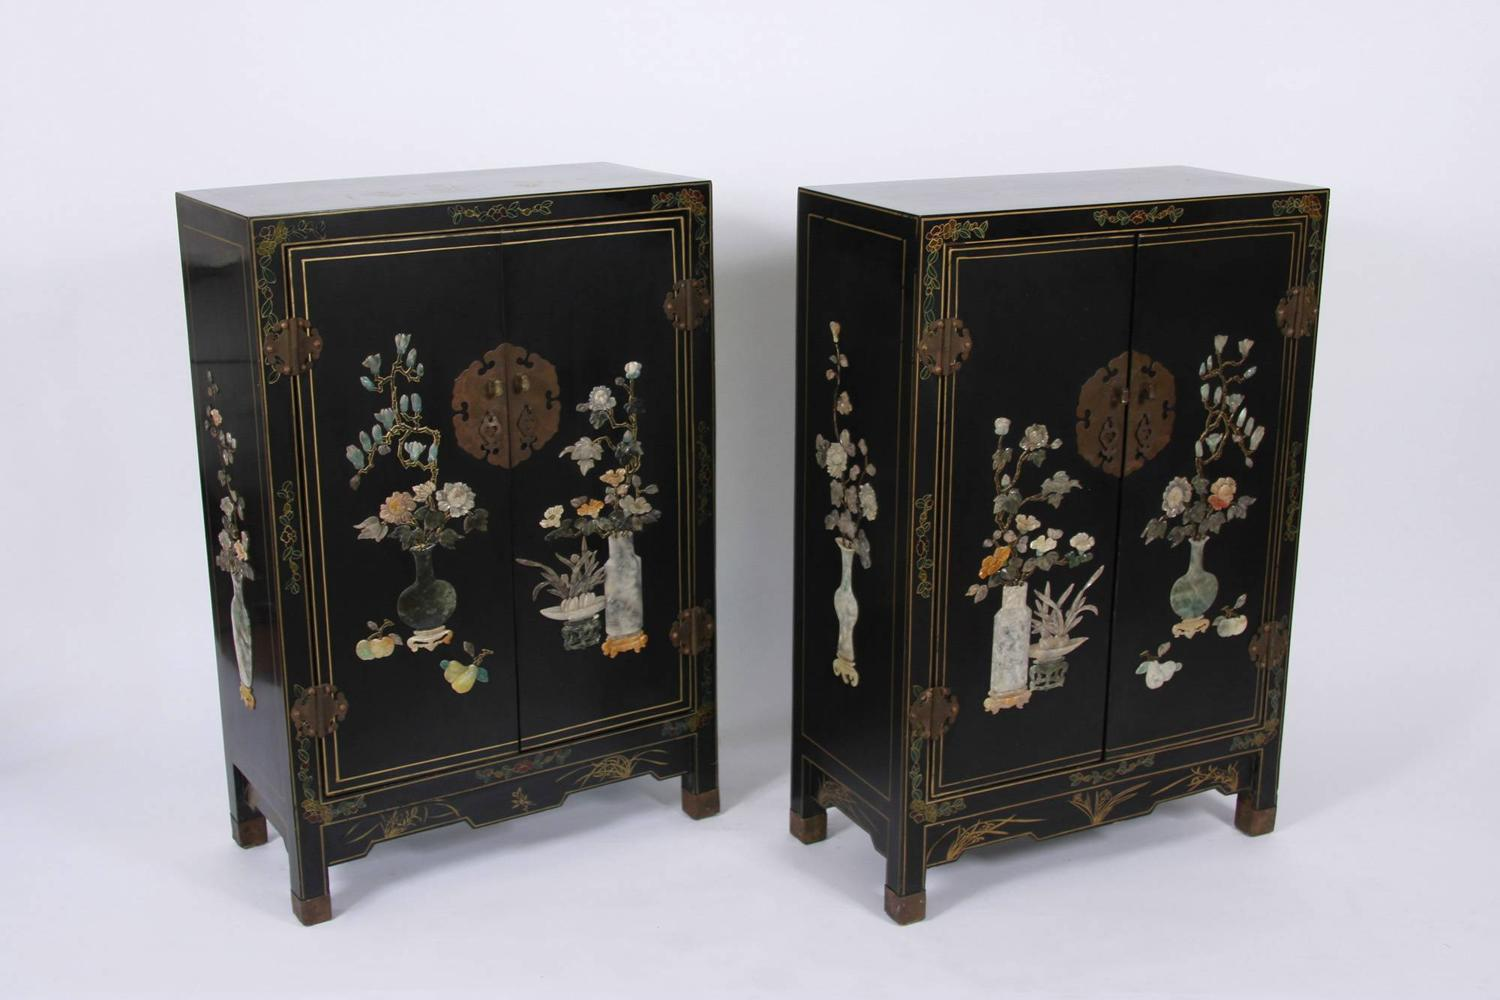 Pair of Chinoiserie Cabinets